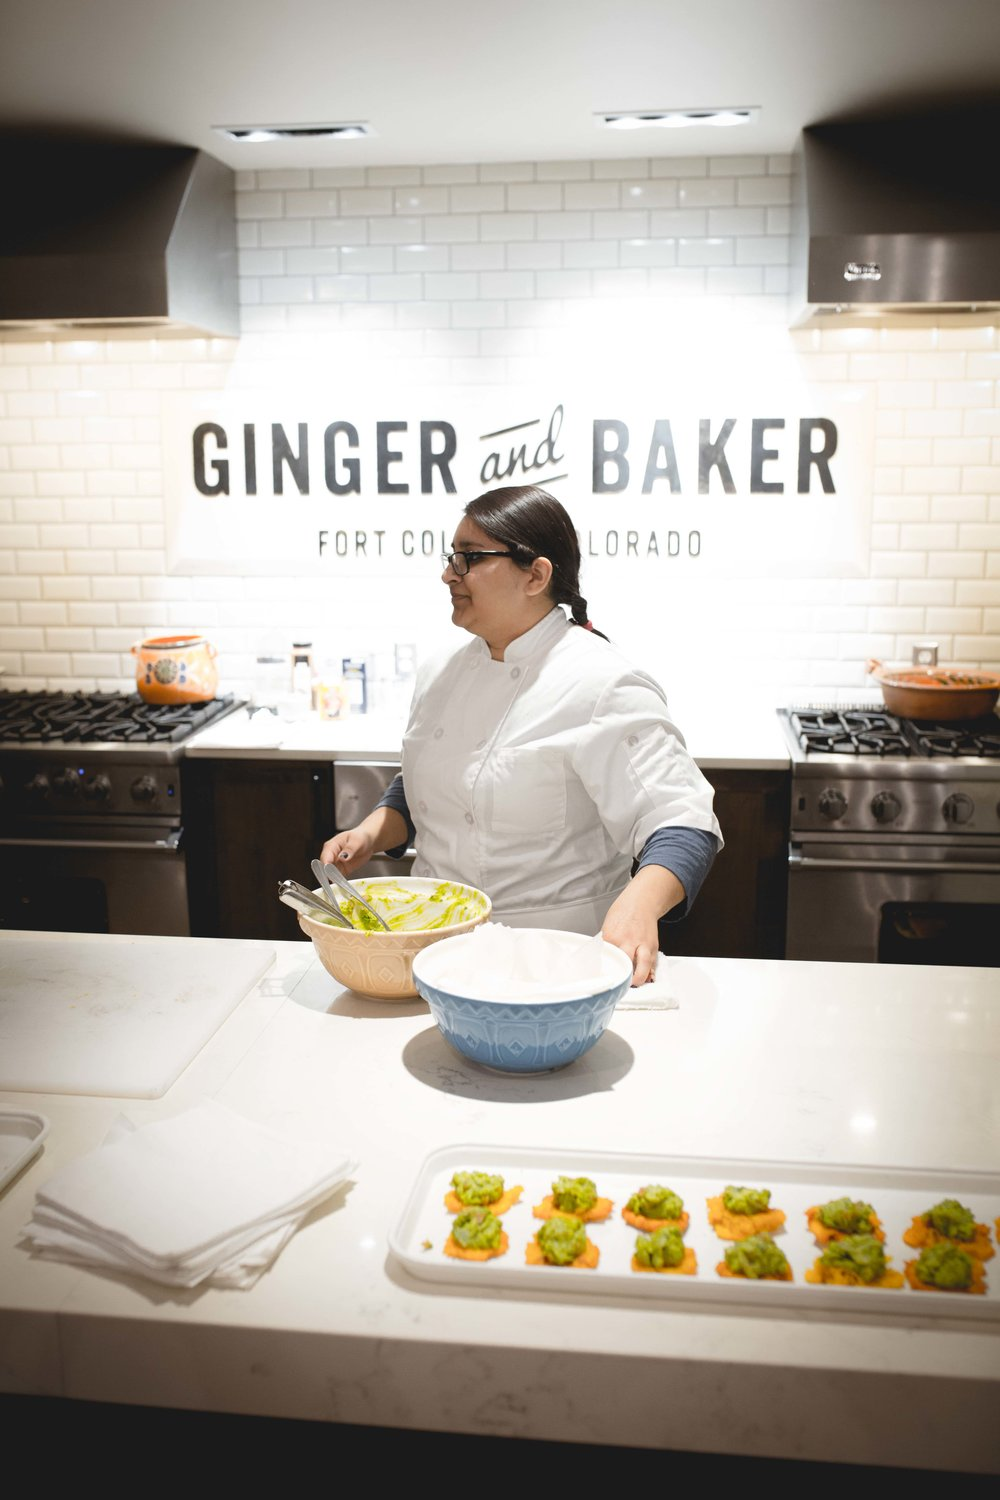 GingerandBaker-JuliyJuan-CookingClass-Feb28-23.jpg